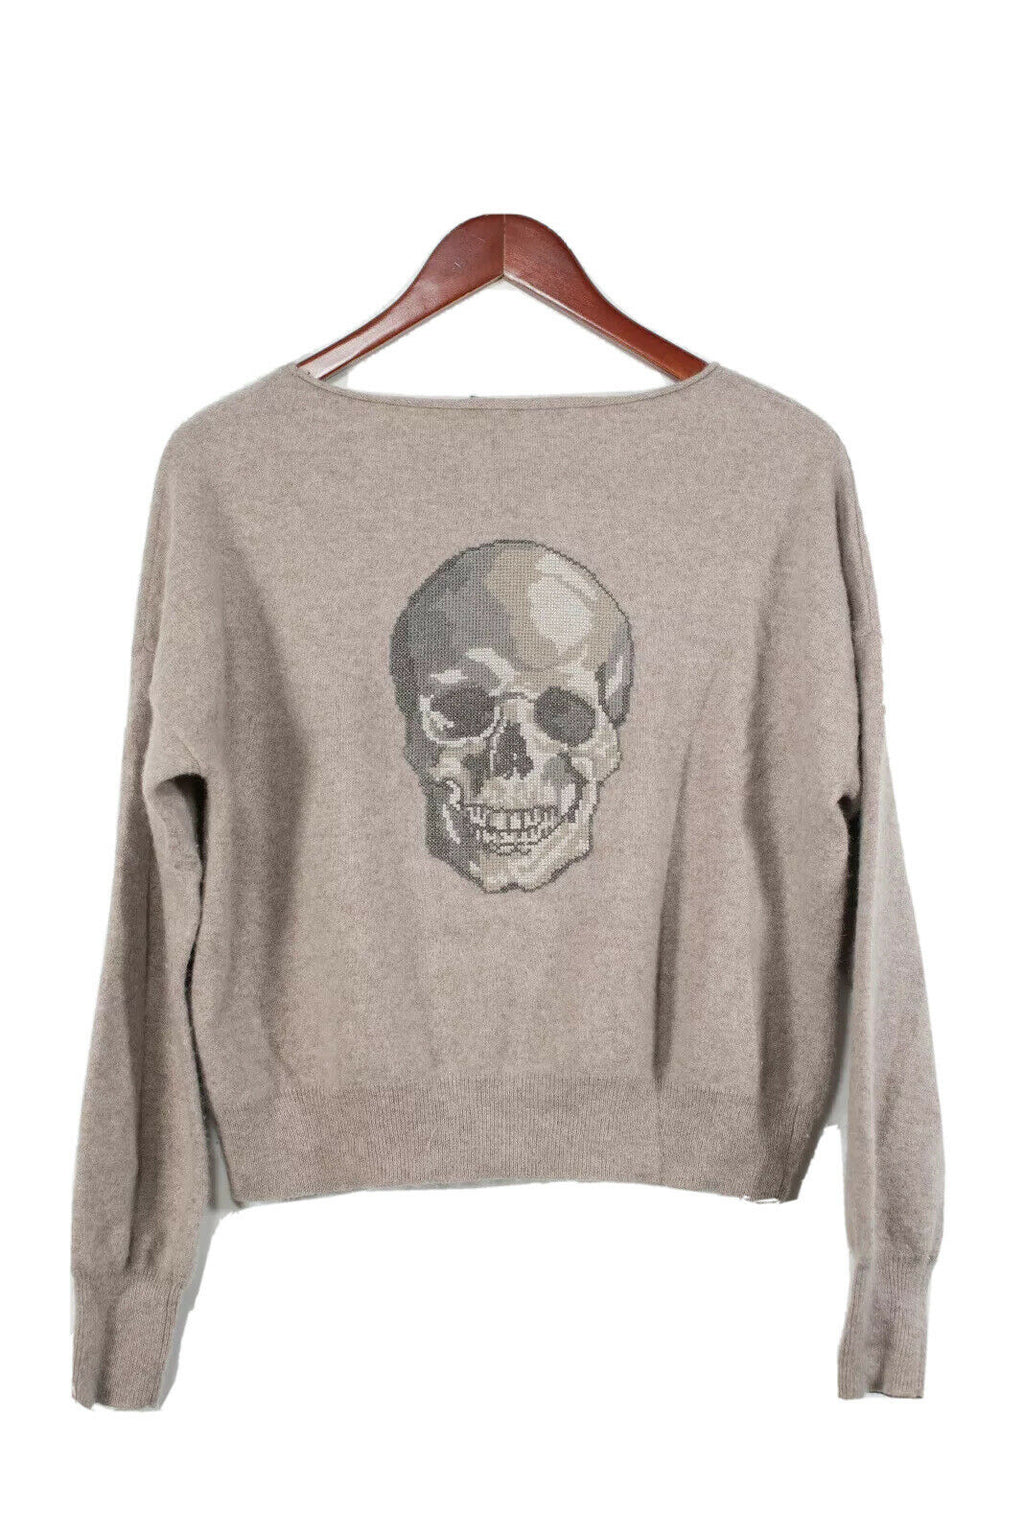 Skull Cashmere Small Beige Embroidered Skull Pullover Sweater